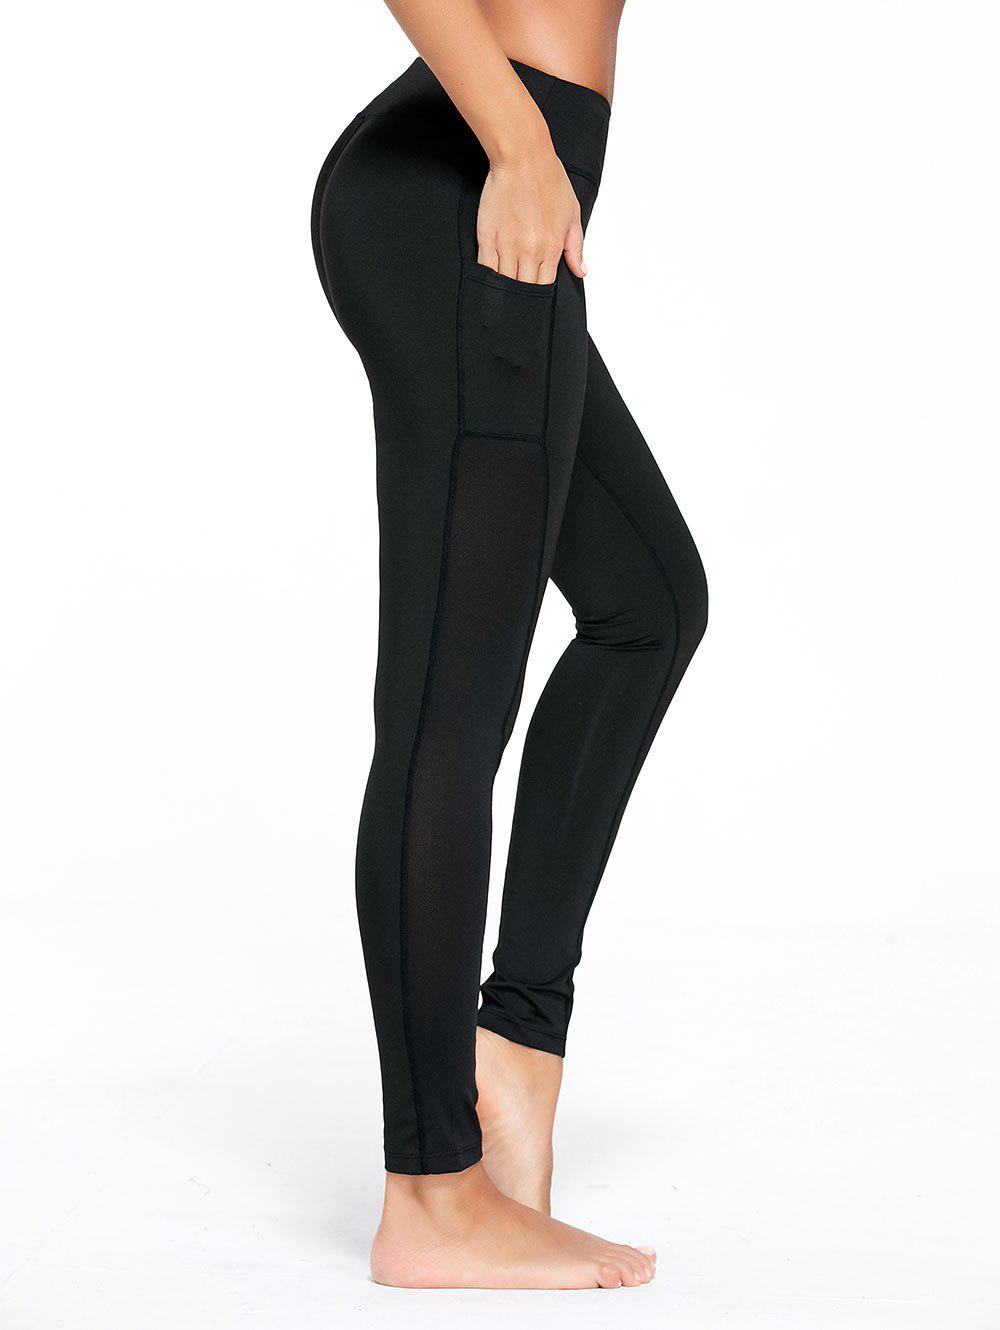 Stretchy Side Pocket Workout LeggingsWOMEN<br><br>Size: S; Color: BLACK; Style: Active; Length: Ninth; Material: Cotton Blends,Polyester,Spandex; Fit Type: Skinny; Waist Type: High; Closure Type: Elastic Waist; Pattern Type: Others; Pant Style: Pencil Pants; Elasticity: Elastic; Weight: 0.2400kg; Package Contents: 1 x Leggings;